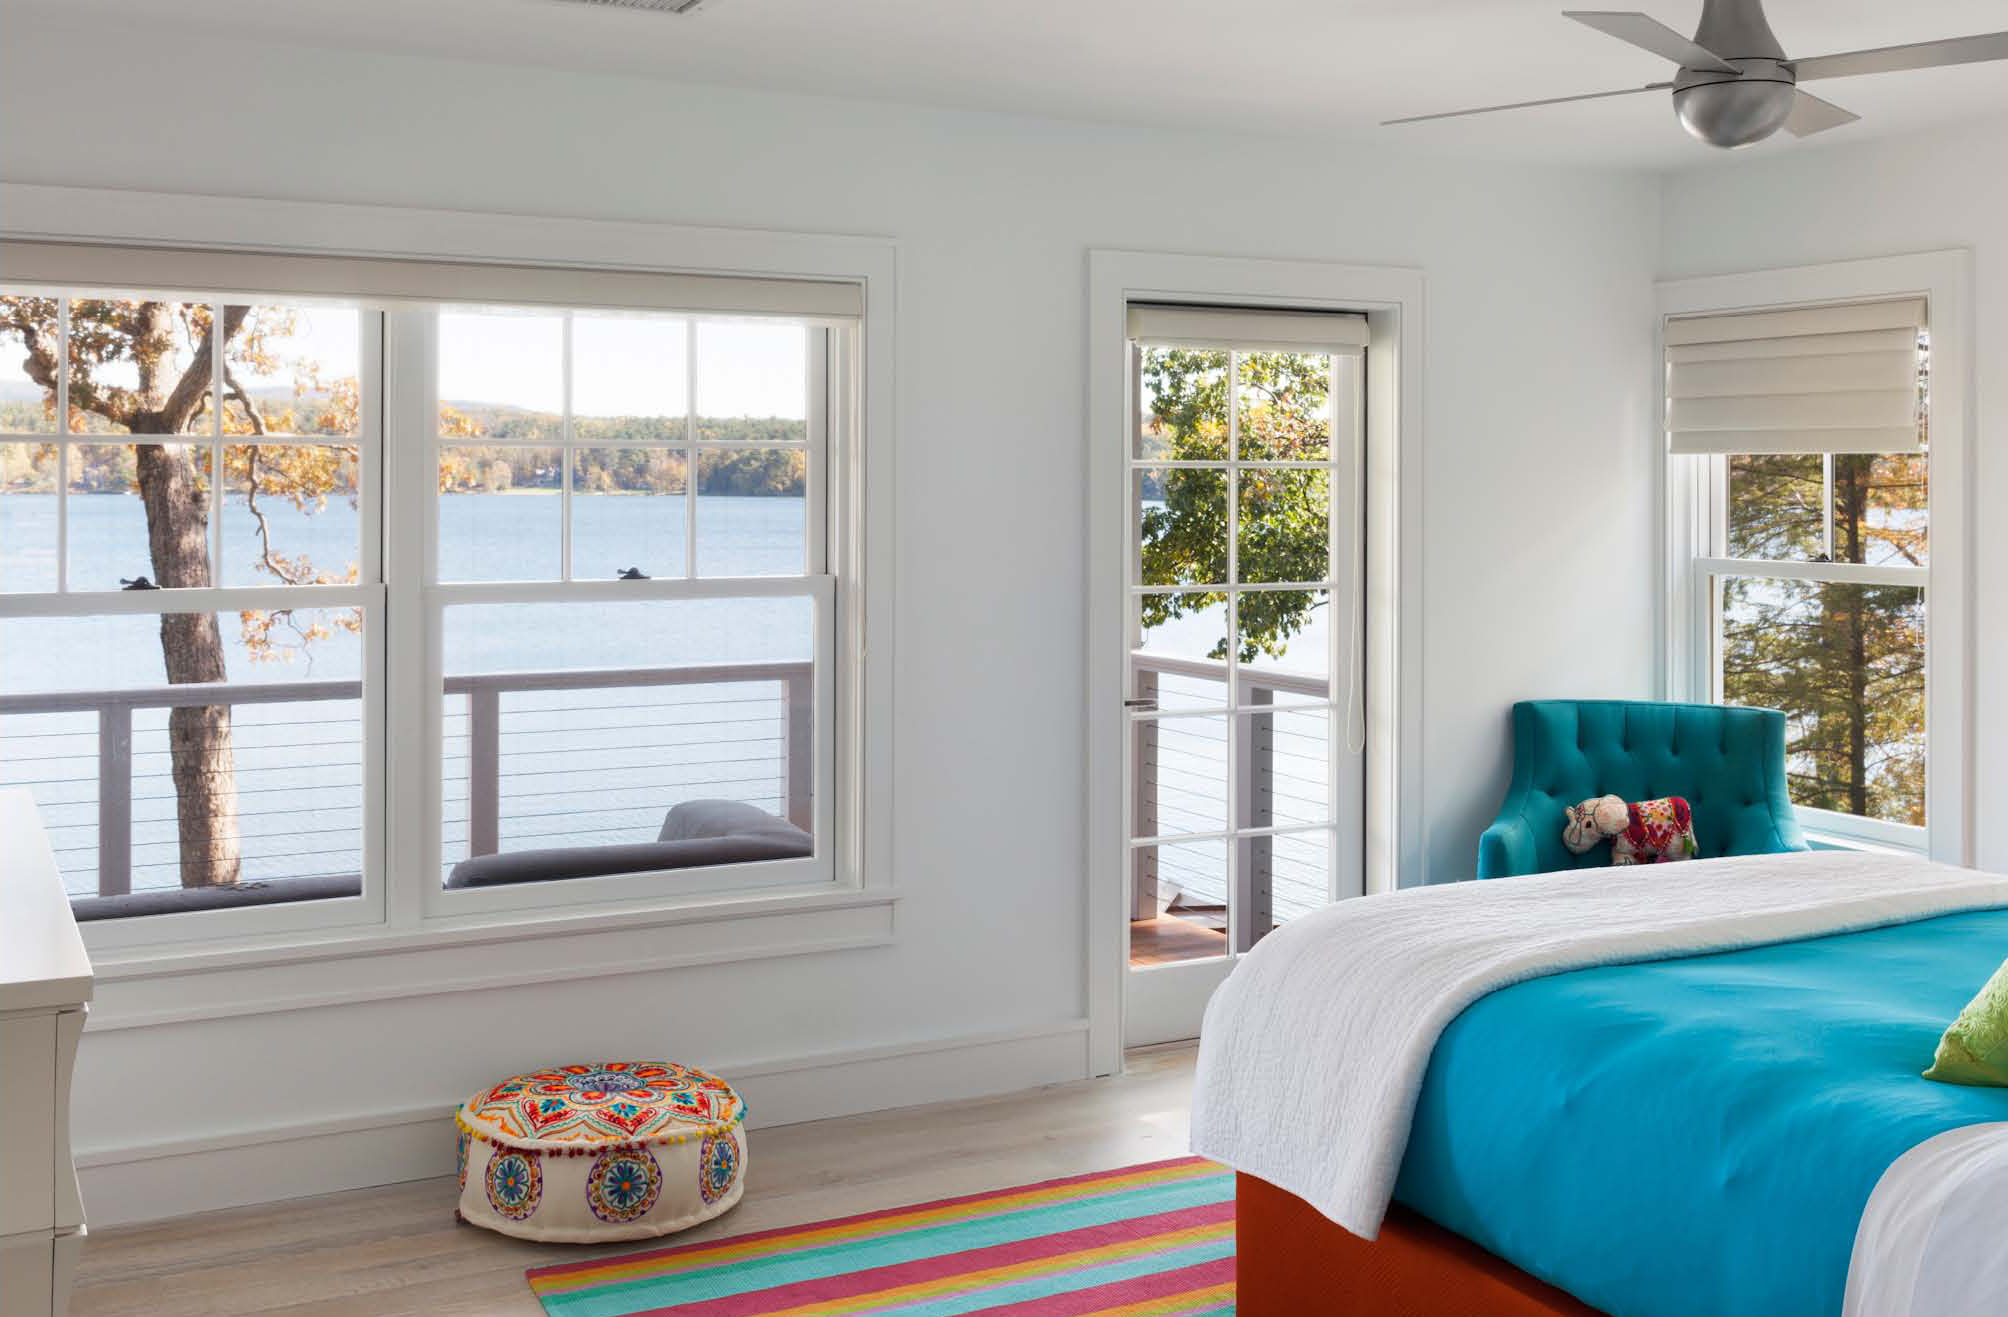 Twin Lakes Residence_Guest Room 2.jpg